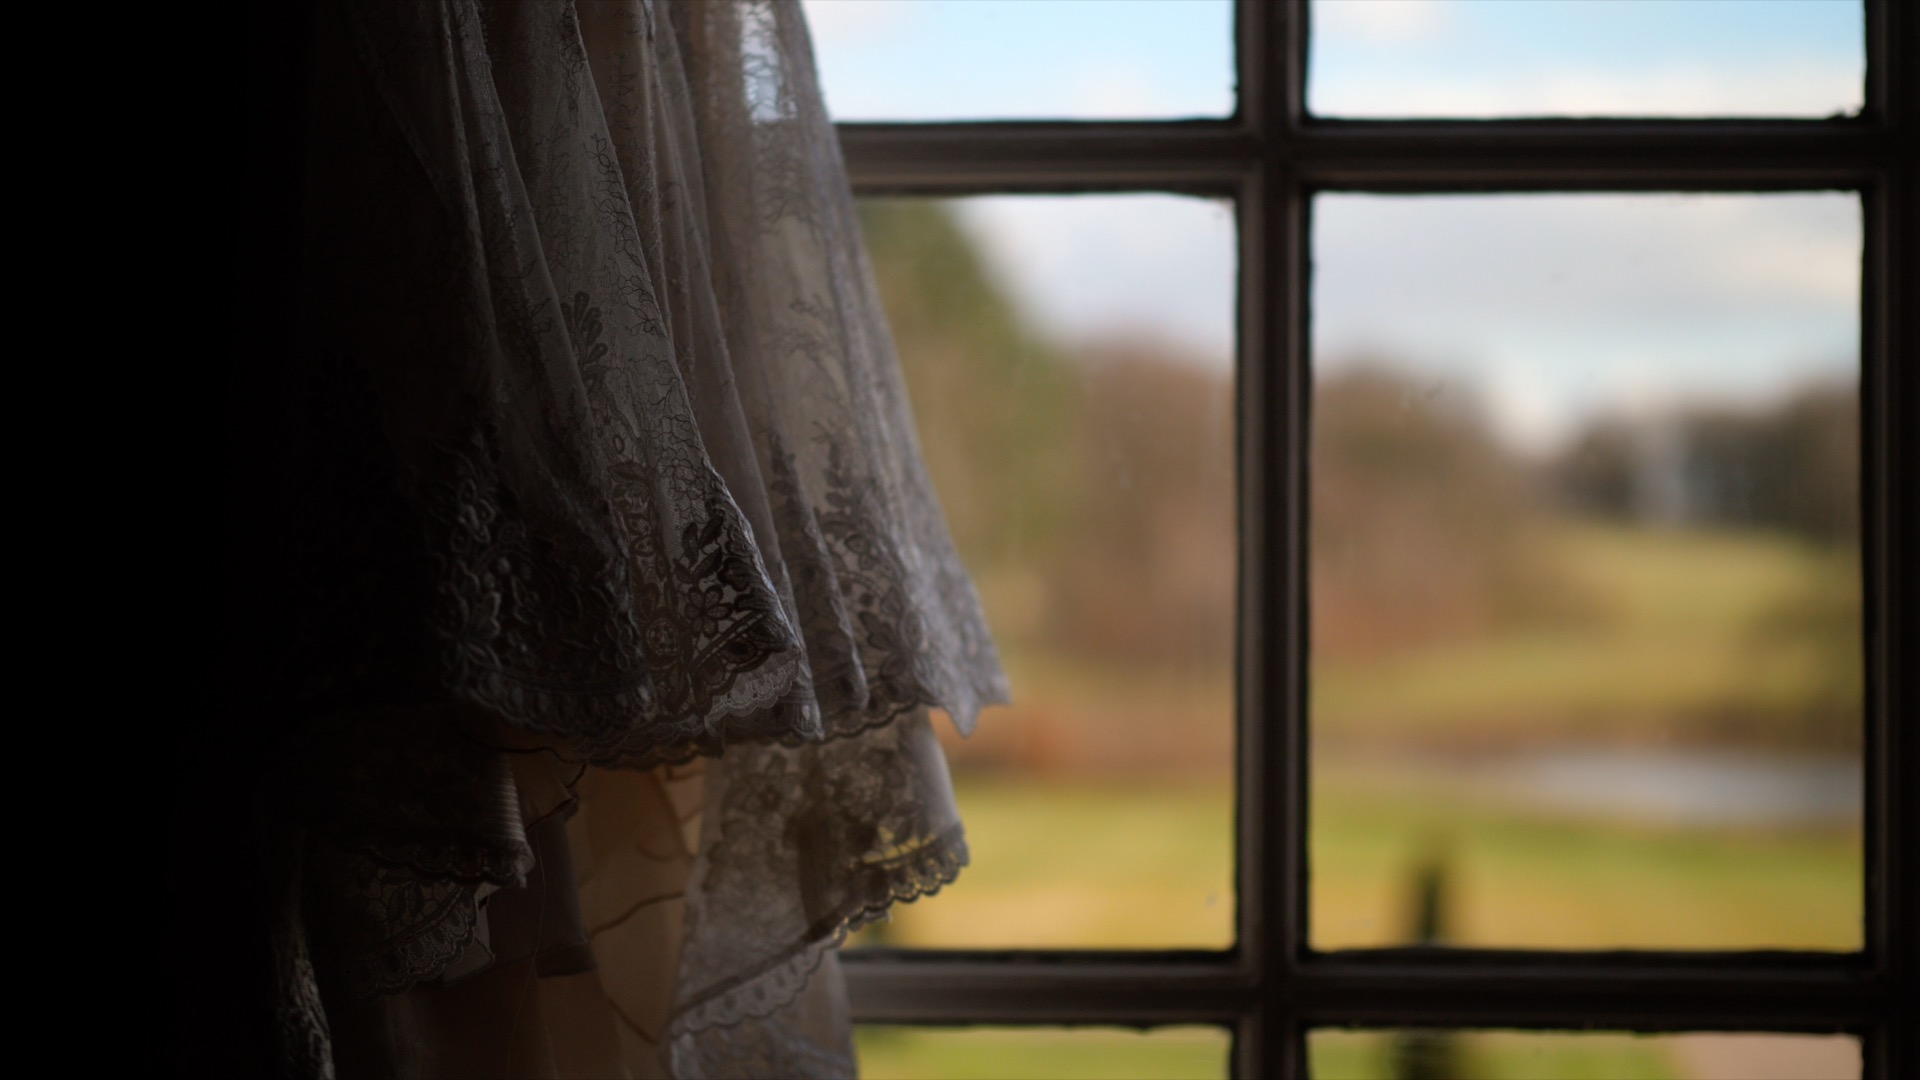 North West Wedding Videographer captures Jen's Wedding Dress hangs in the window at Knowsley Hall.